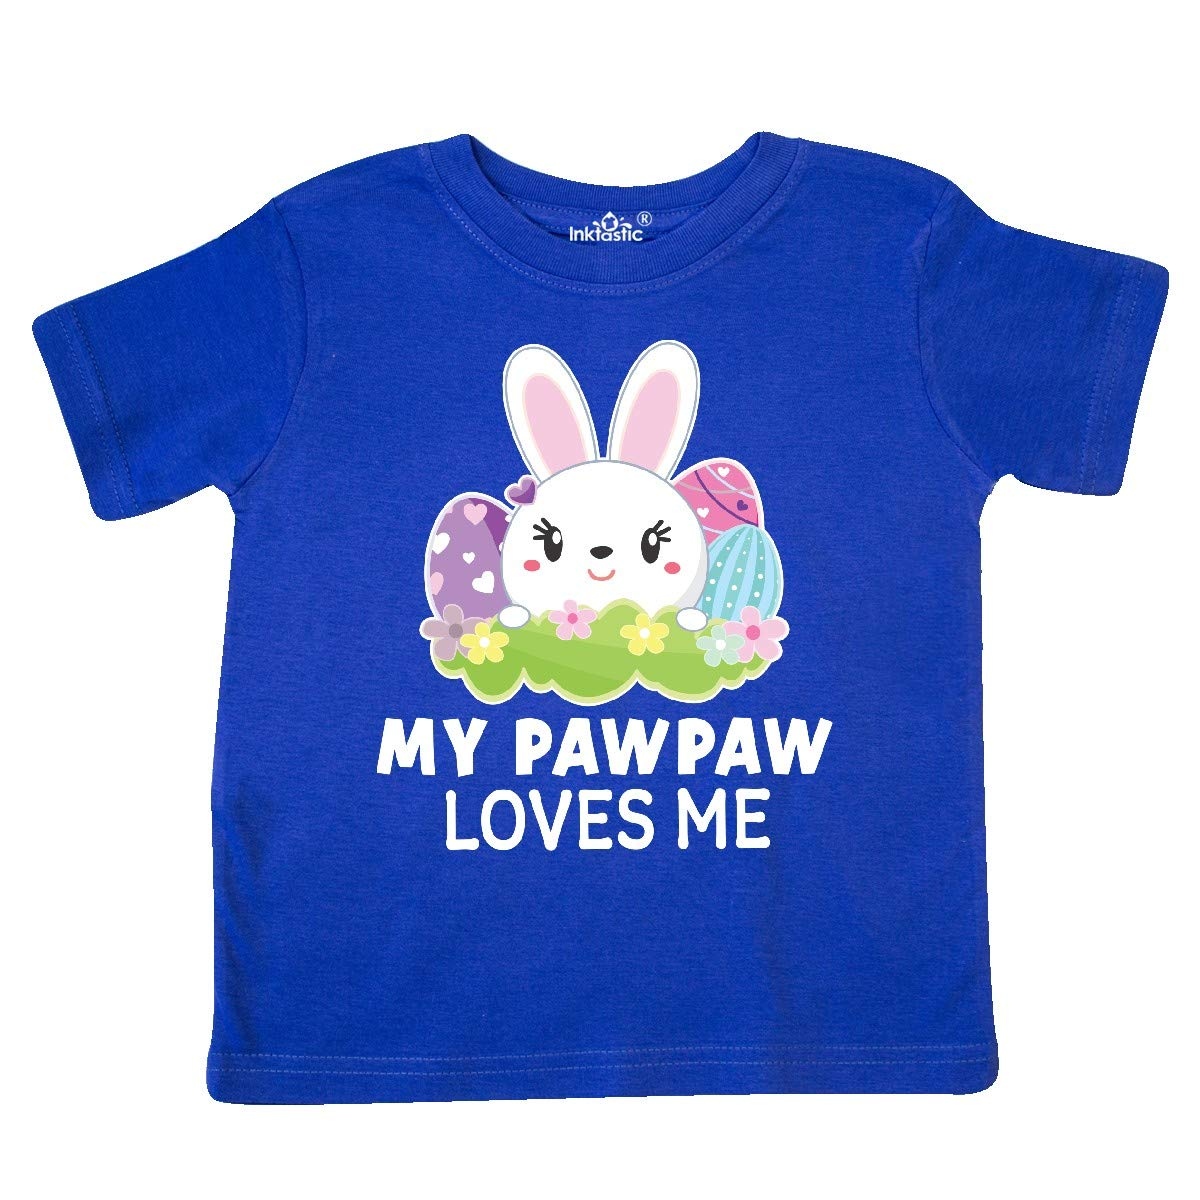 inktastic My Pawpaw Loves Me with Bunny and Easter Eggs Toddler T-Shirt